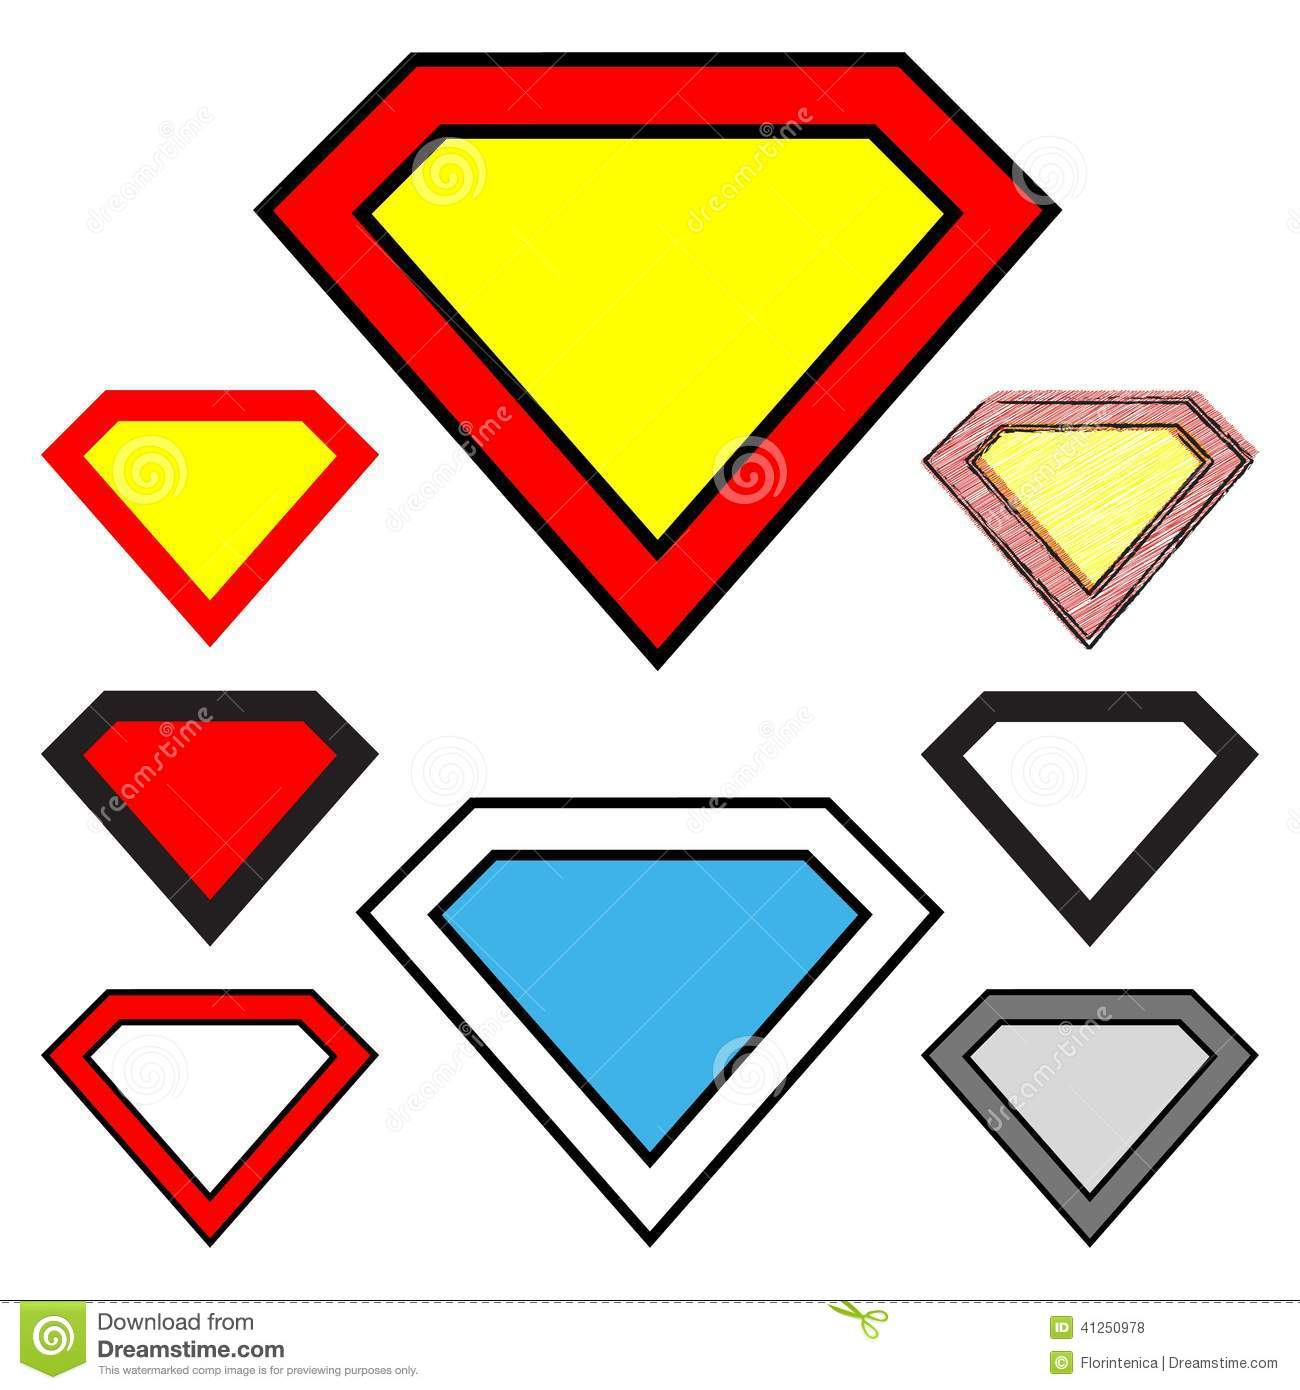 Diamond clipart superman Clipart Panda Clipart Free Diamond